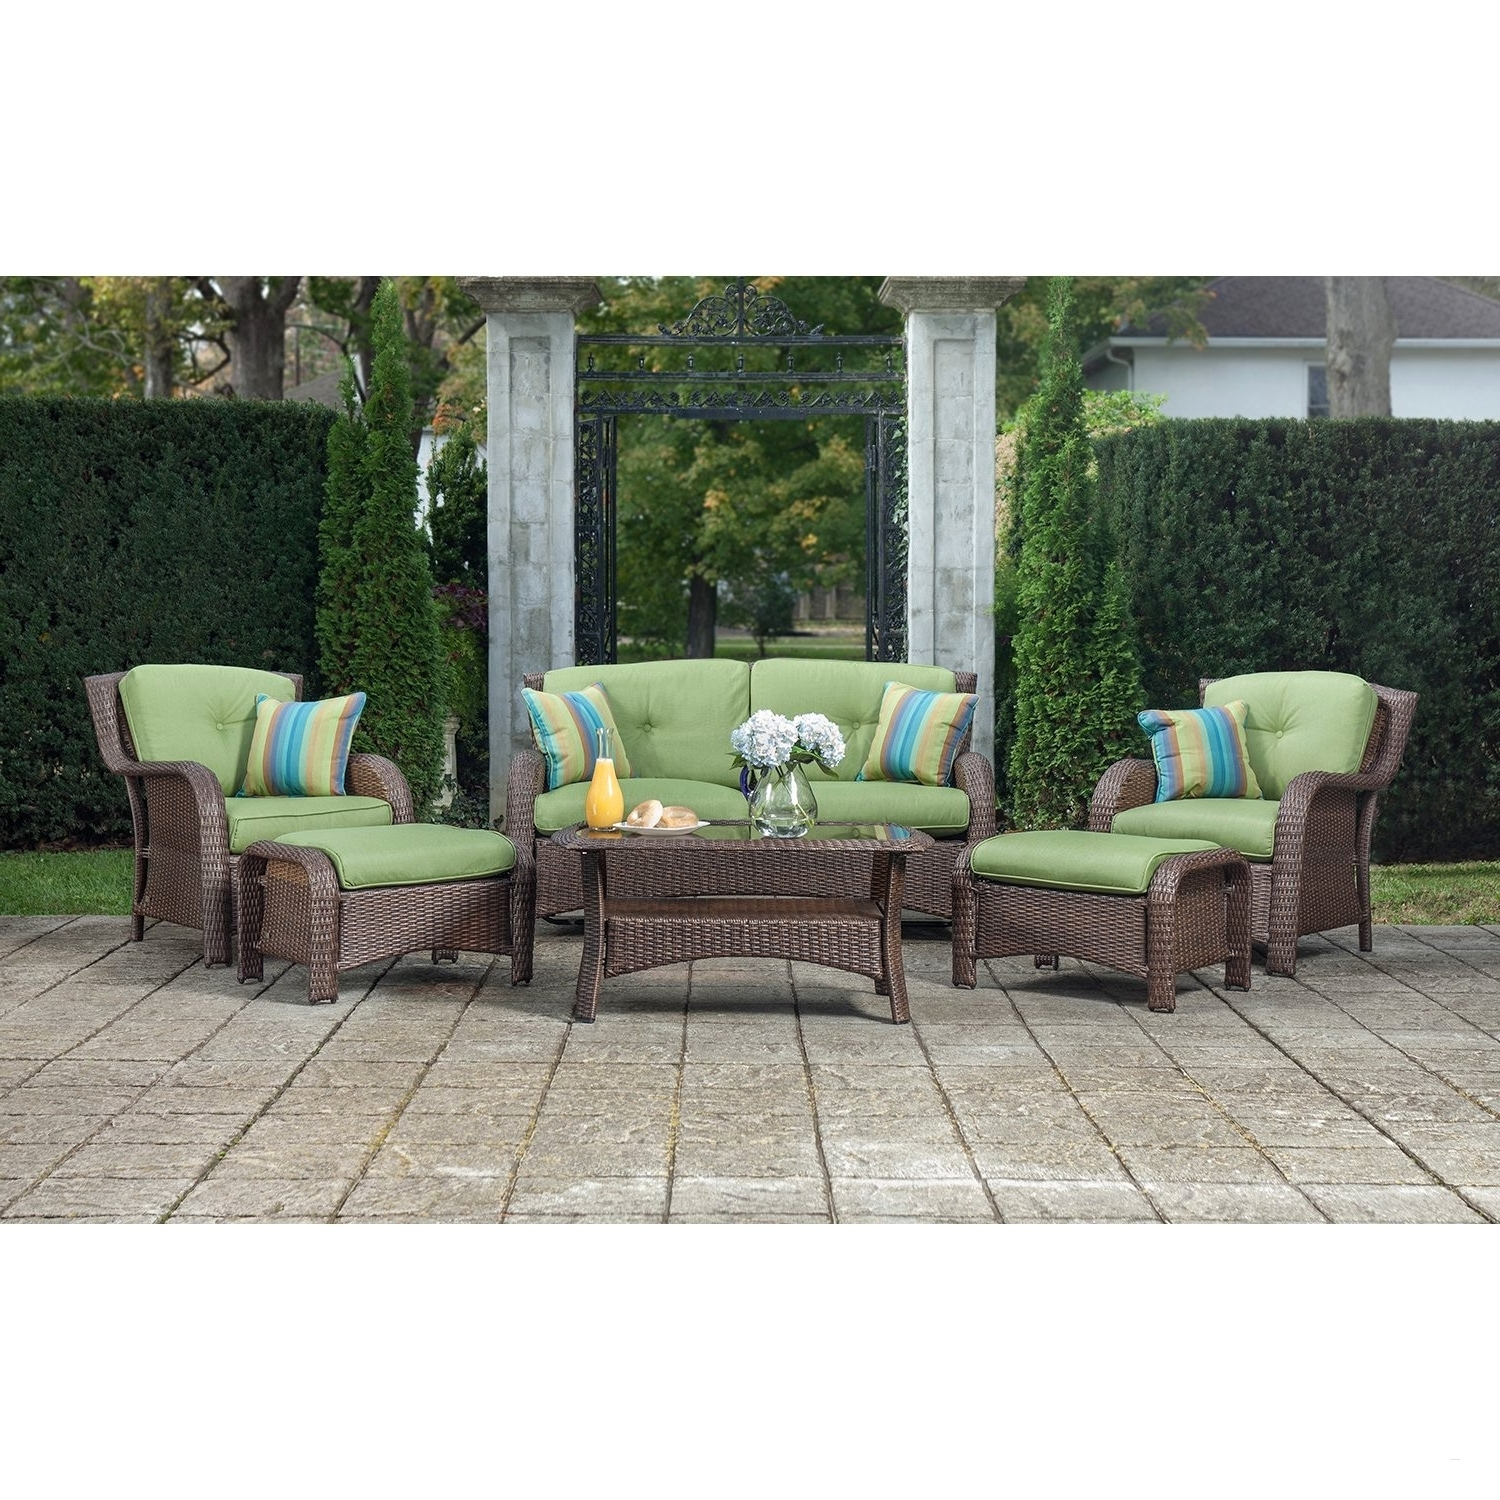 Most Recently Released Lazy Boy Outdoor Furniture Unique 72 Unique Inexpensive Wicker Throughout Lazy Boy Patio Conversation Sets (View 9 of 15)